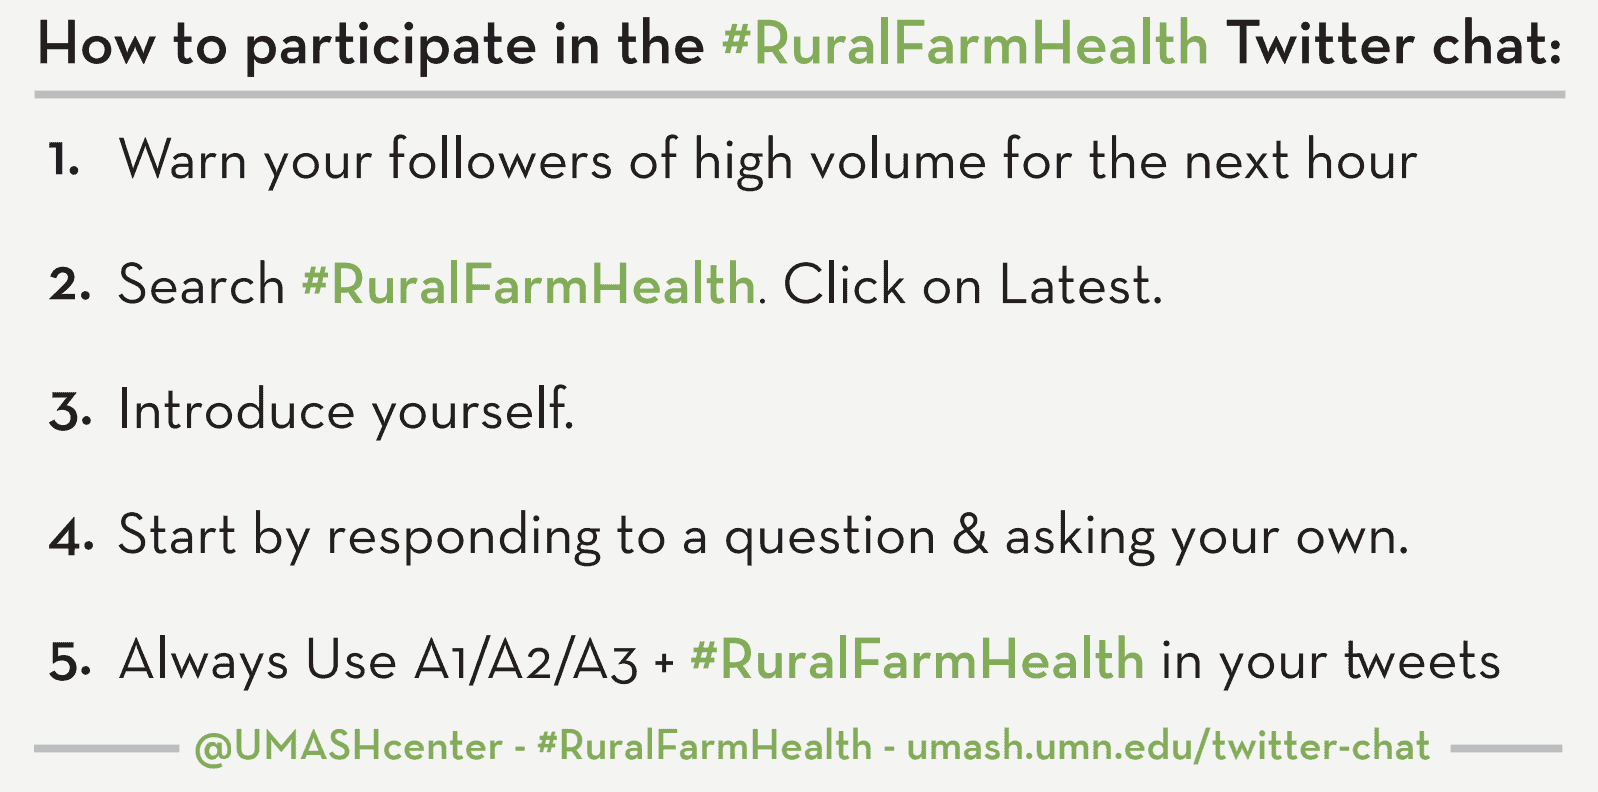 Rural Farm Health Instructional Card